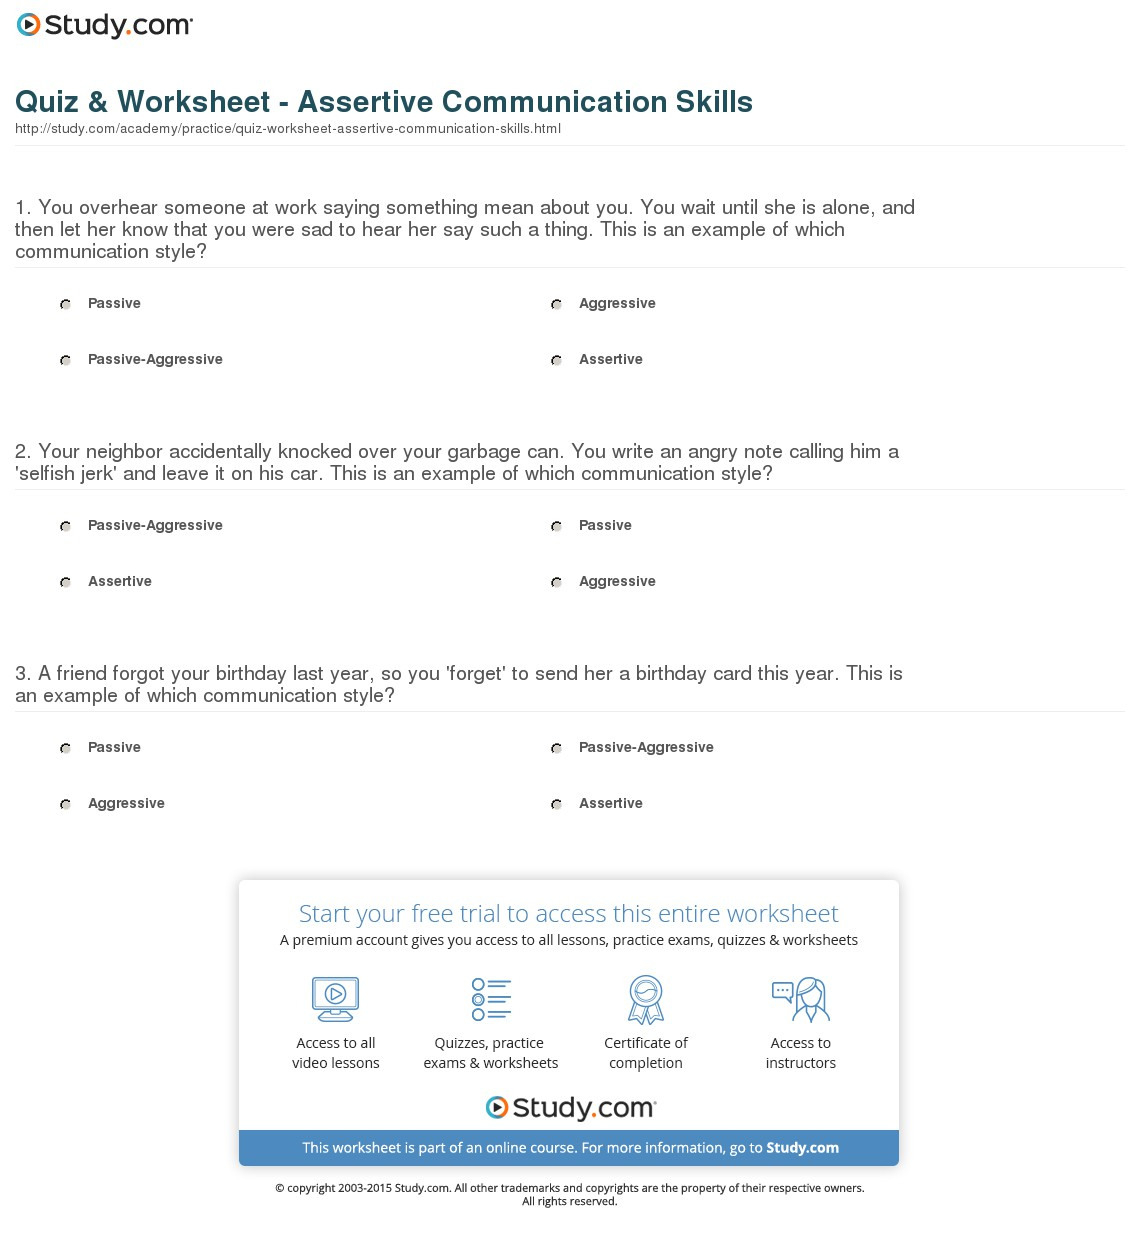 Assertiveness Training Worksheets Mean Median Mode Range